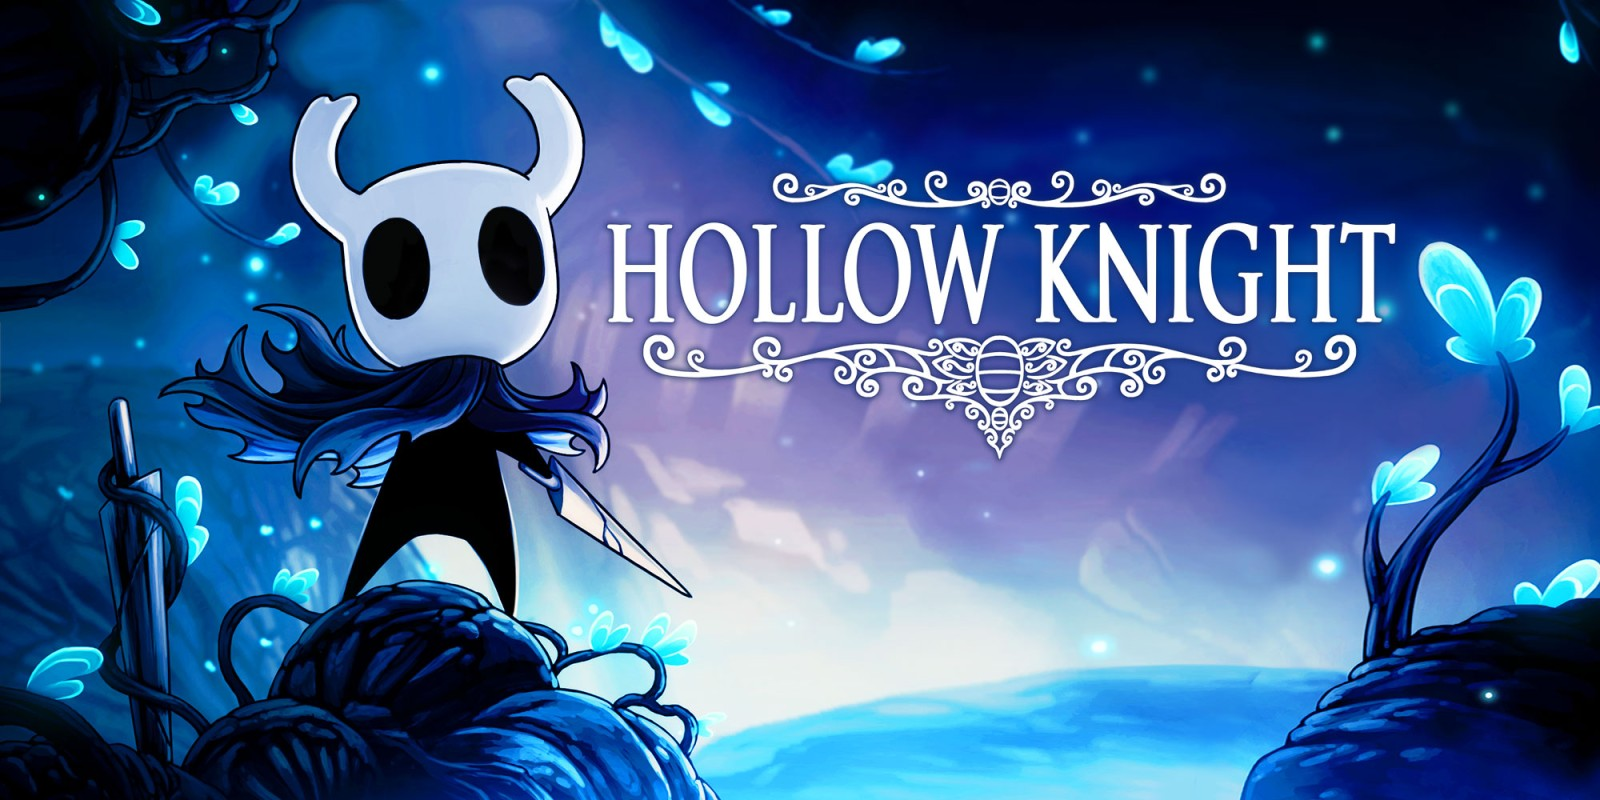 hollow knight review juli 2019